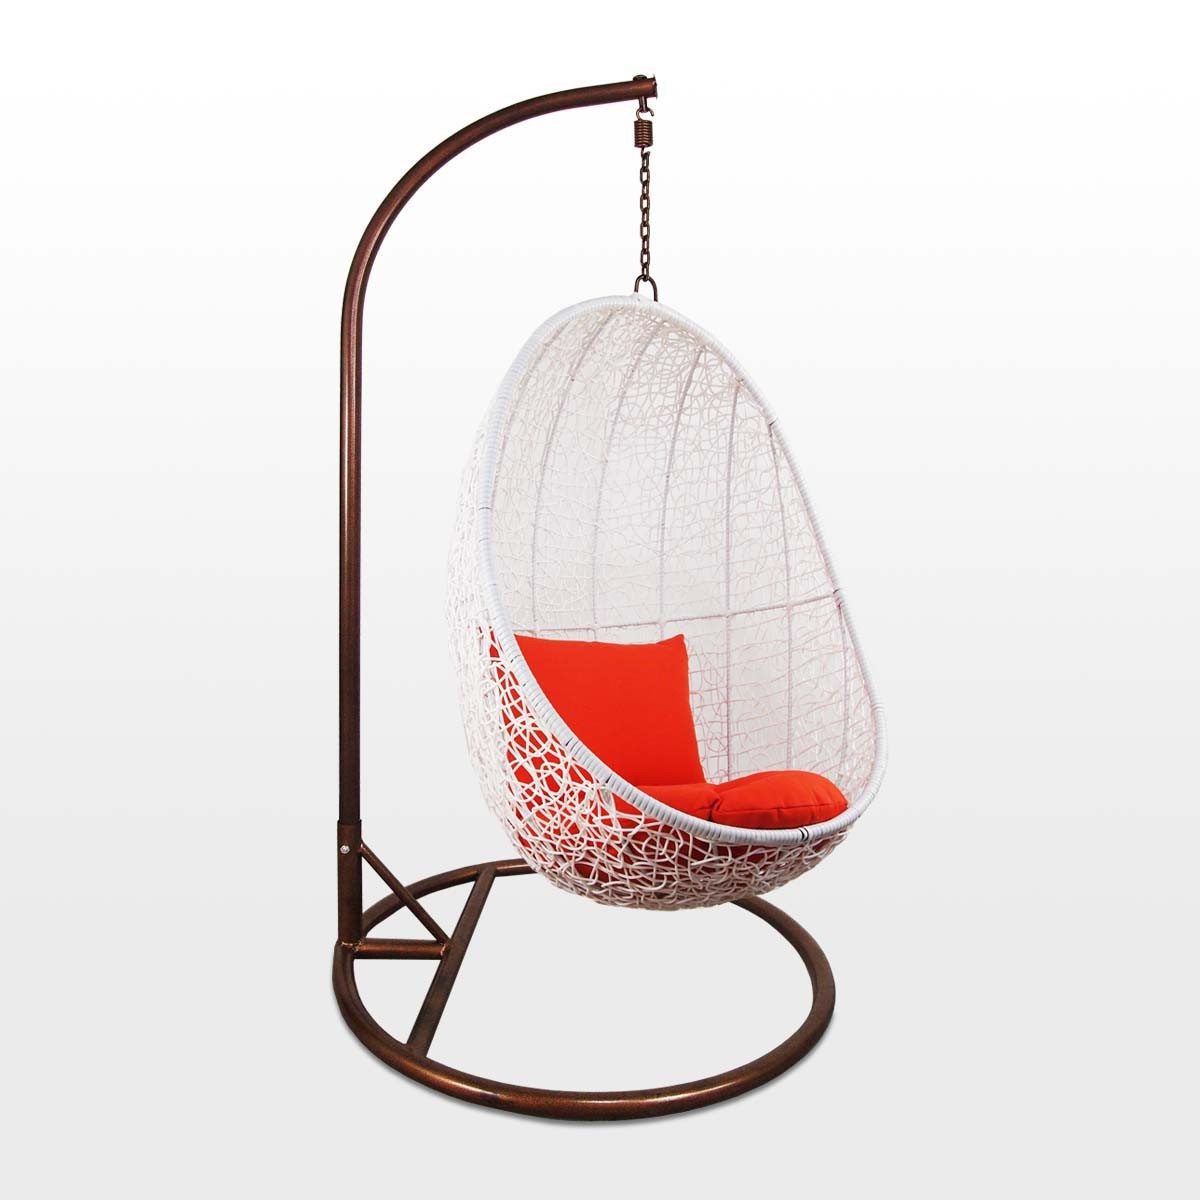 White Cocoon Swing Chair, Orange Cushion - Outdoor Garden ...